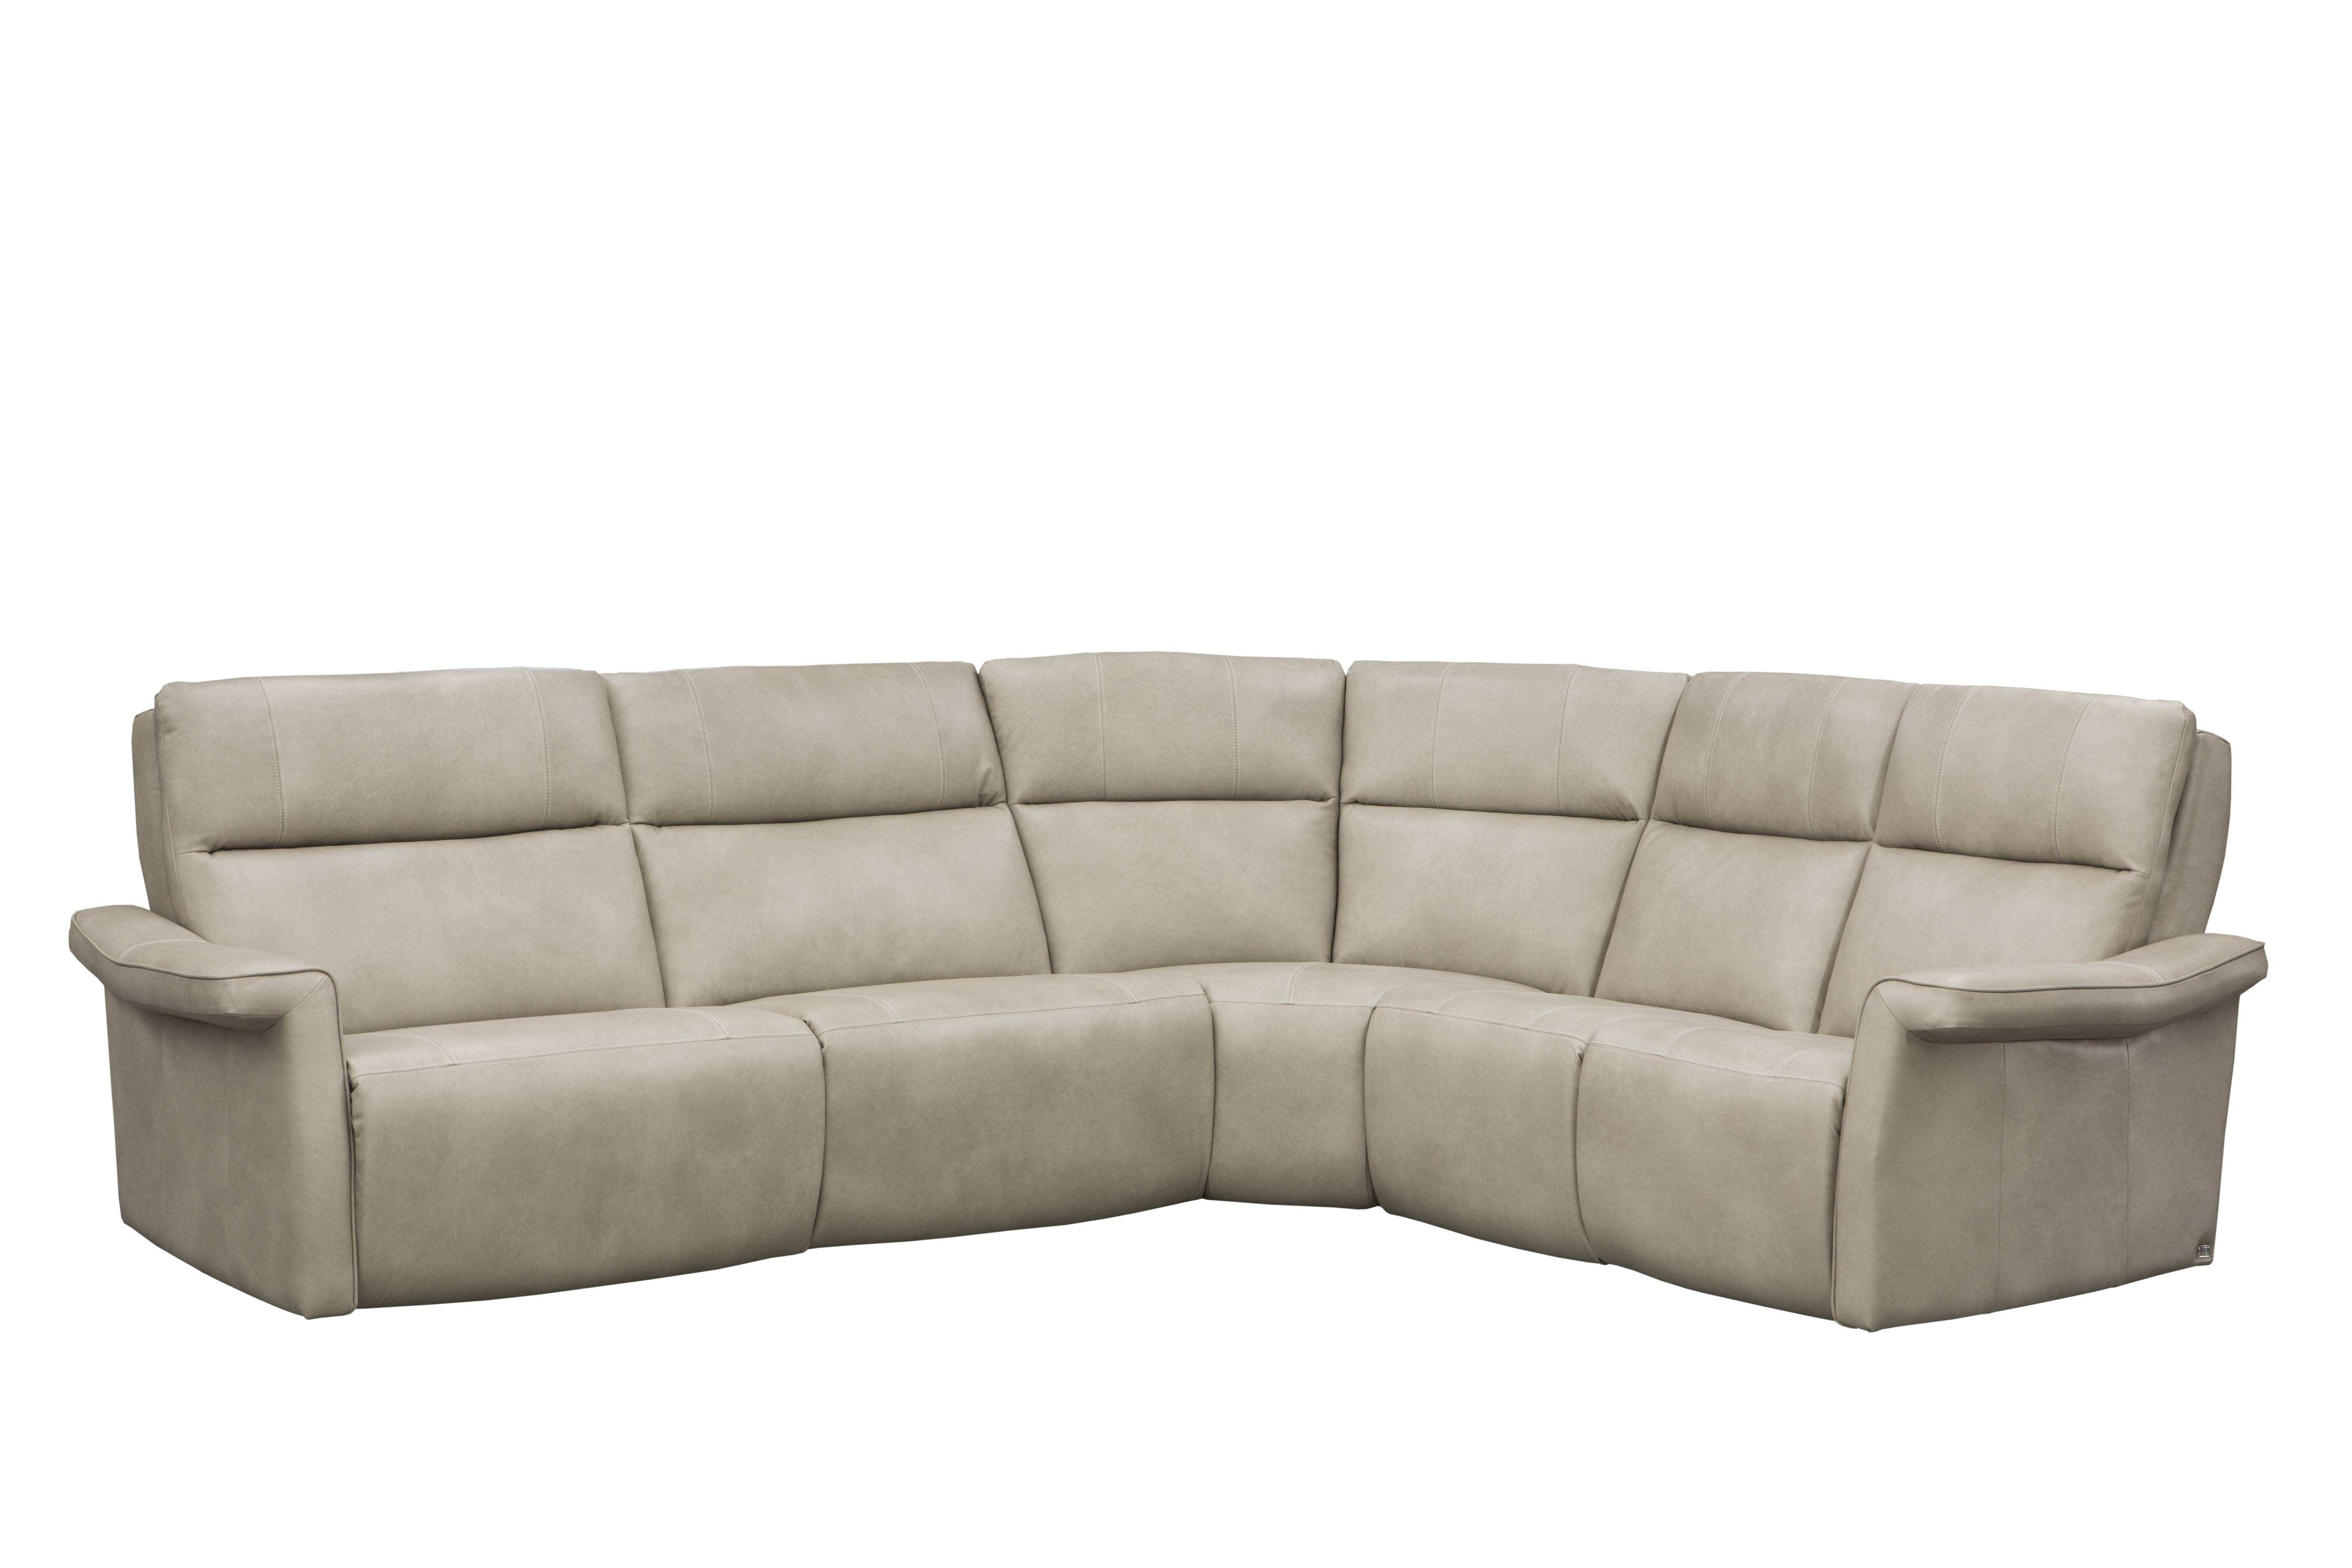 Elran Sofas Sectionals | Thecreativescientist Within Economax Sectional Sofas (View 10 of 10)